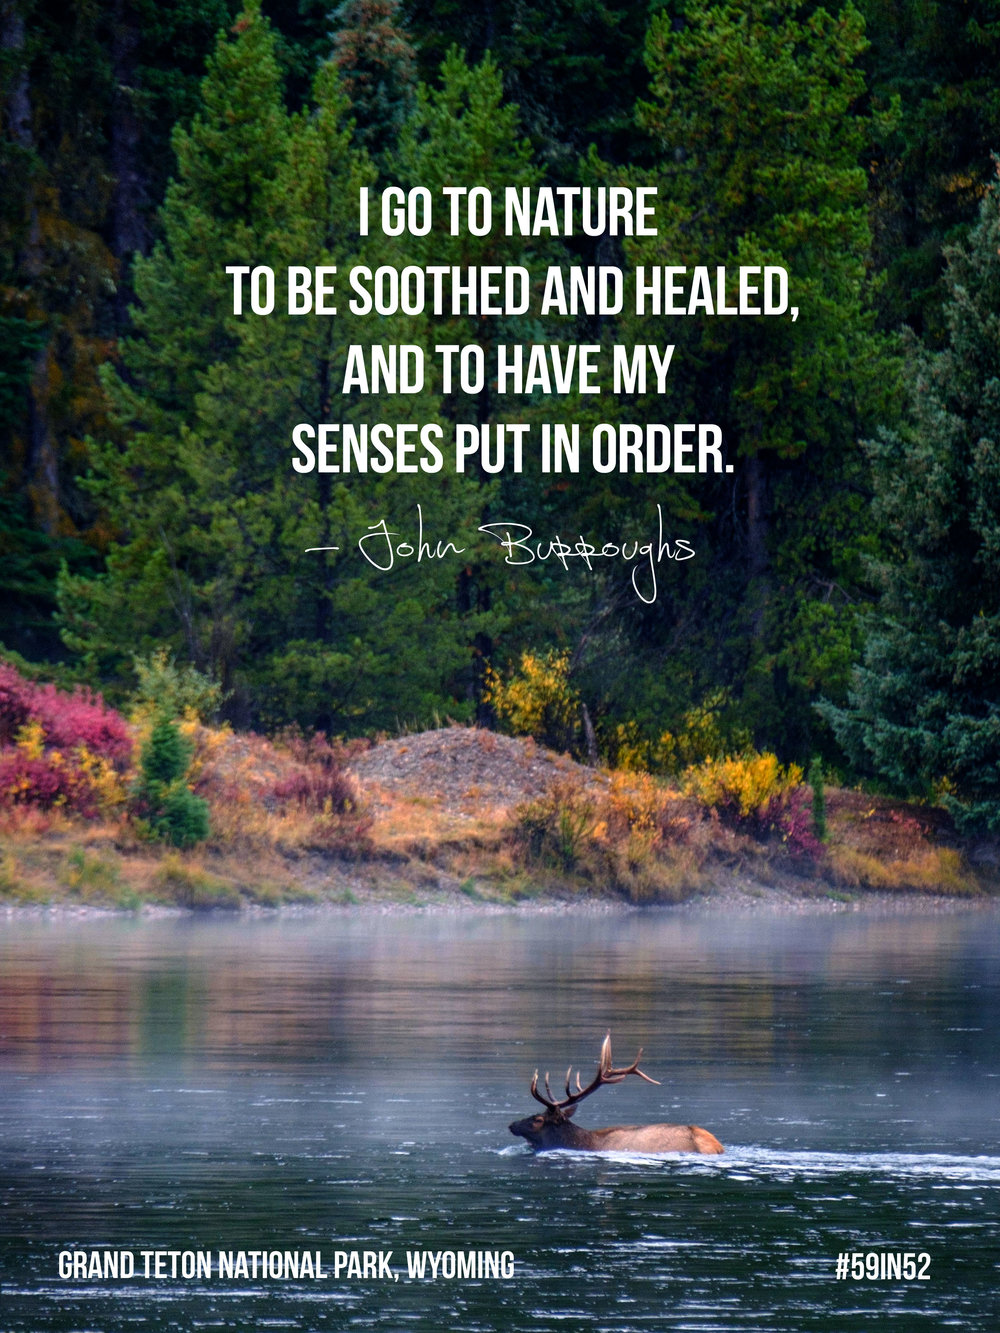 """I go to nature to be soothed and healed, and to have my senses put in order."" - John Burroughs"